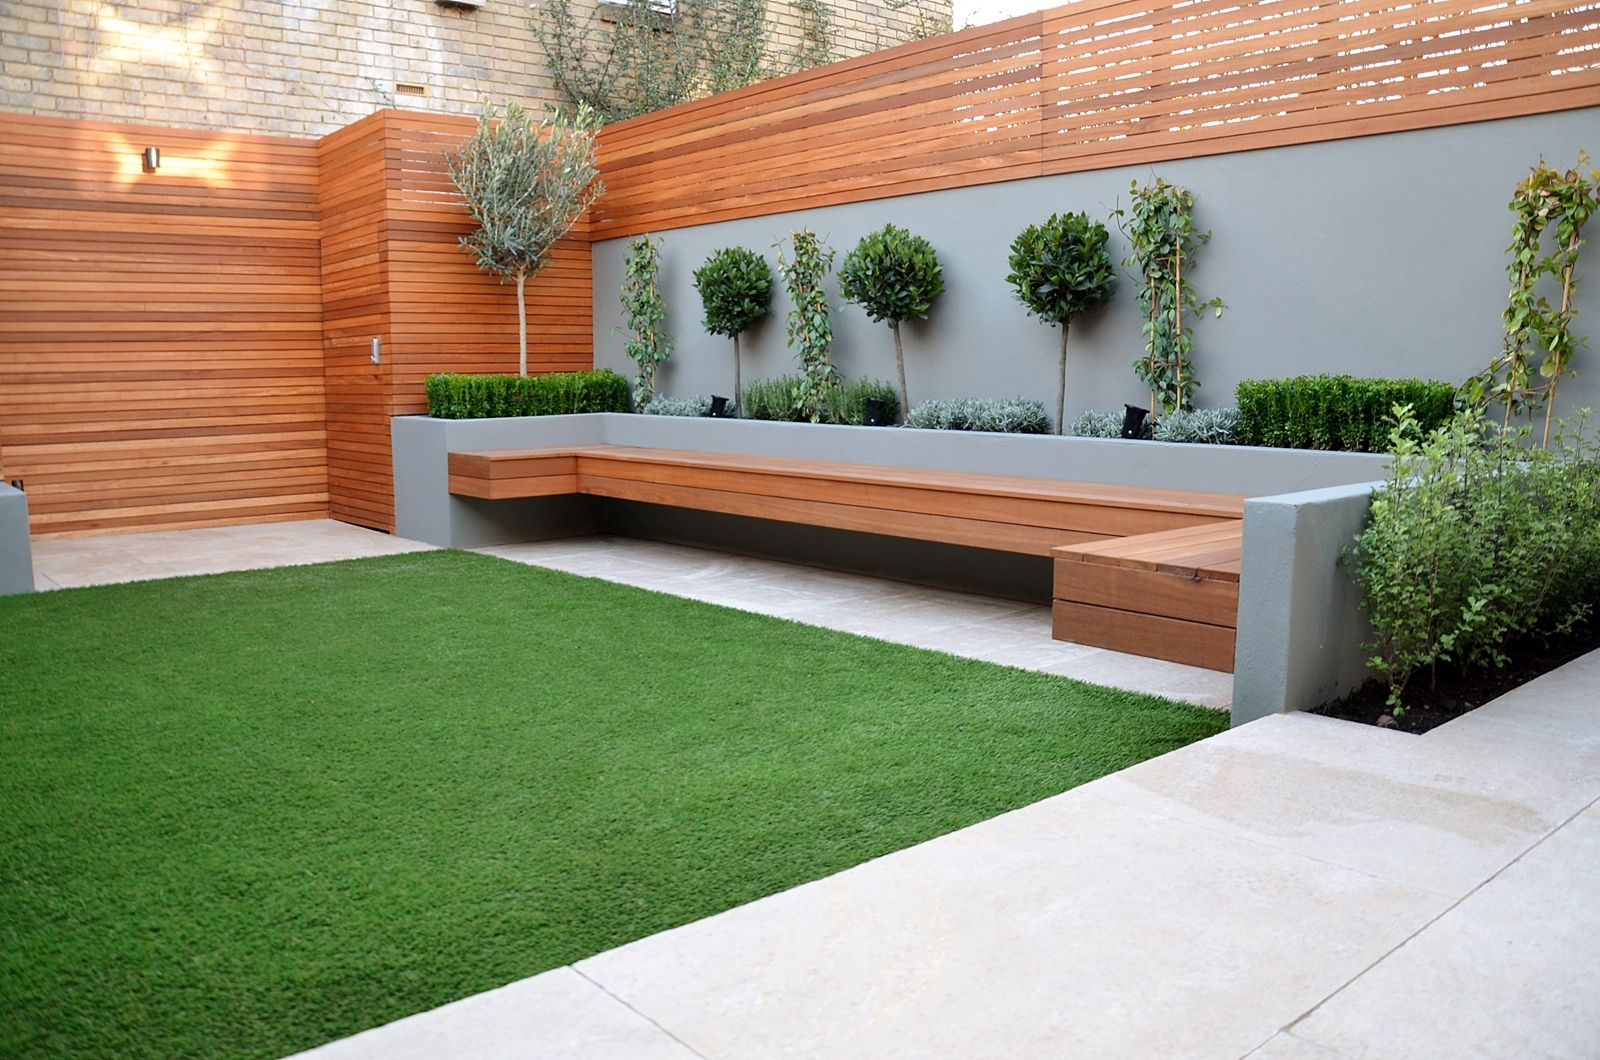 Modern low maintenance garden design clapham london for Small backyard garden design